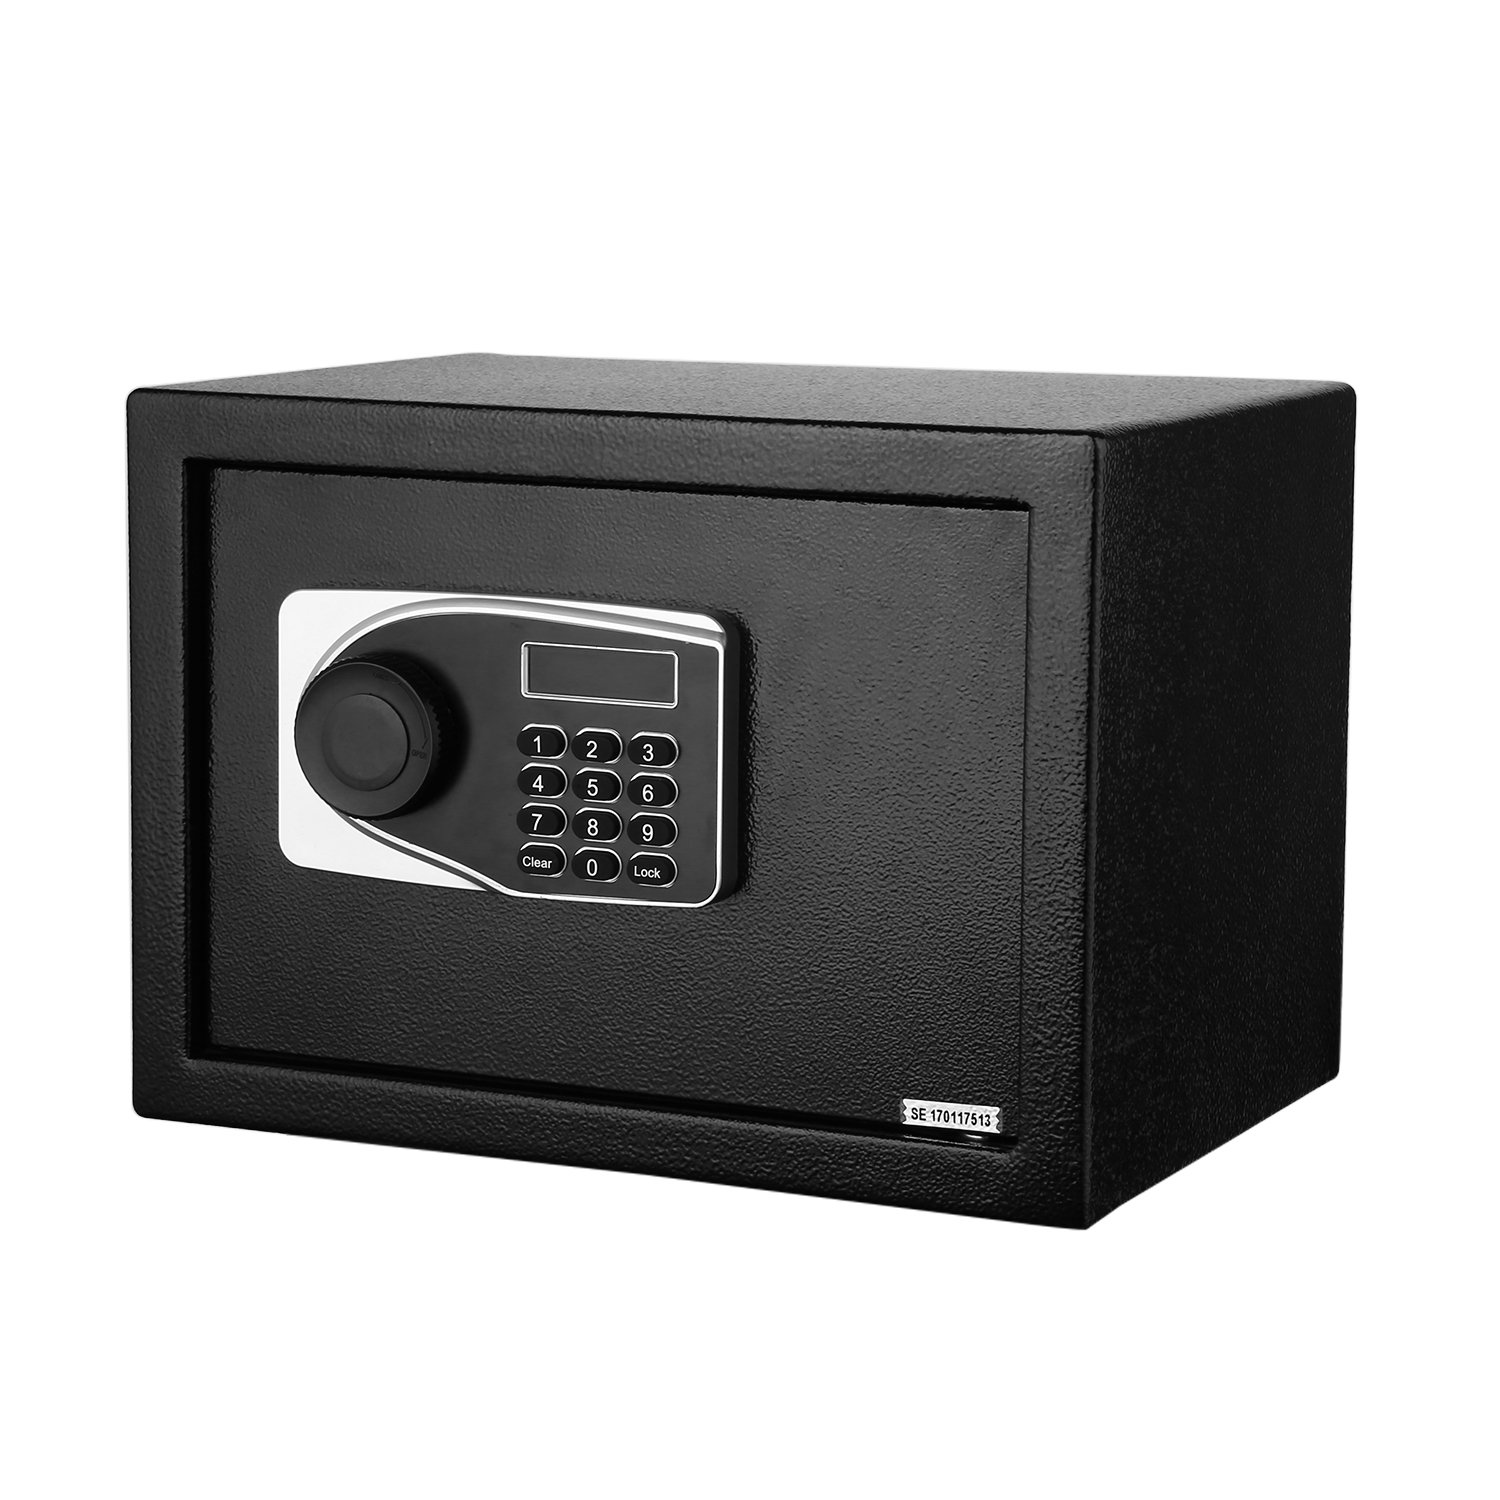 LED Screen Safe Box,Anti-Theft Digital PIN Code Electronic Safe Locker for Documents, Cash & Passport (with Emergency Key)